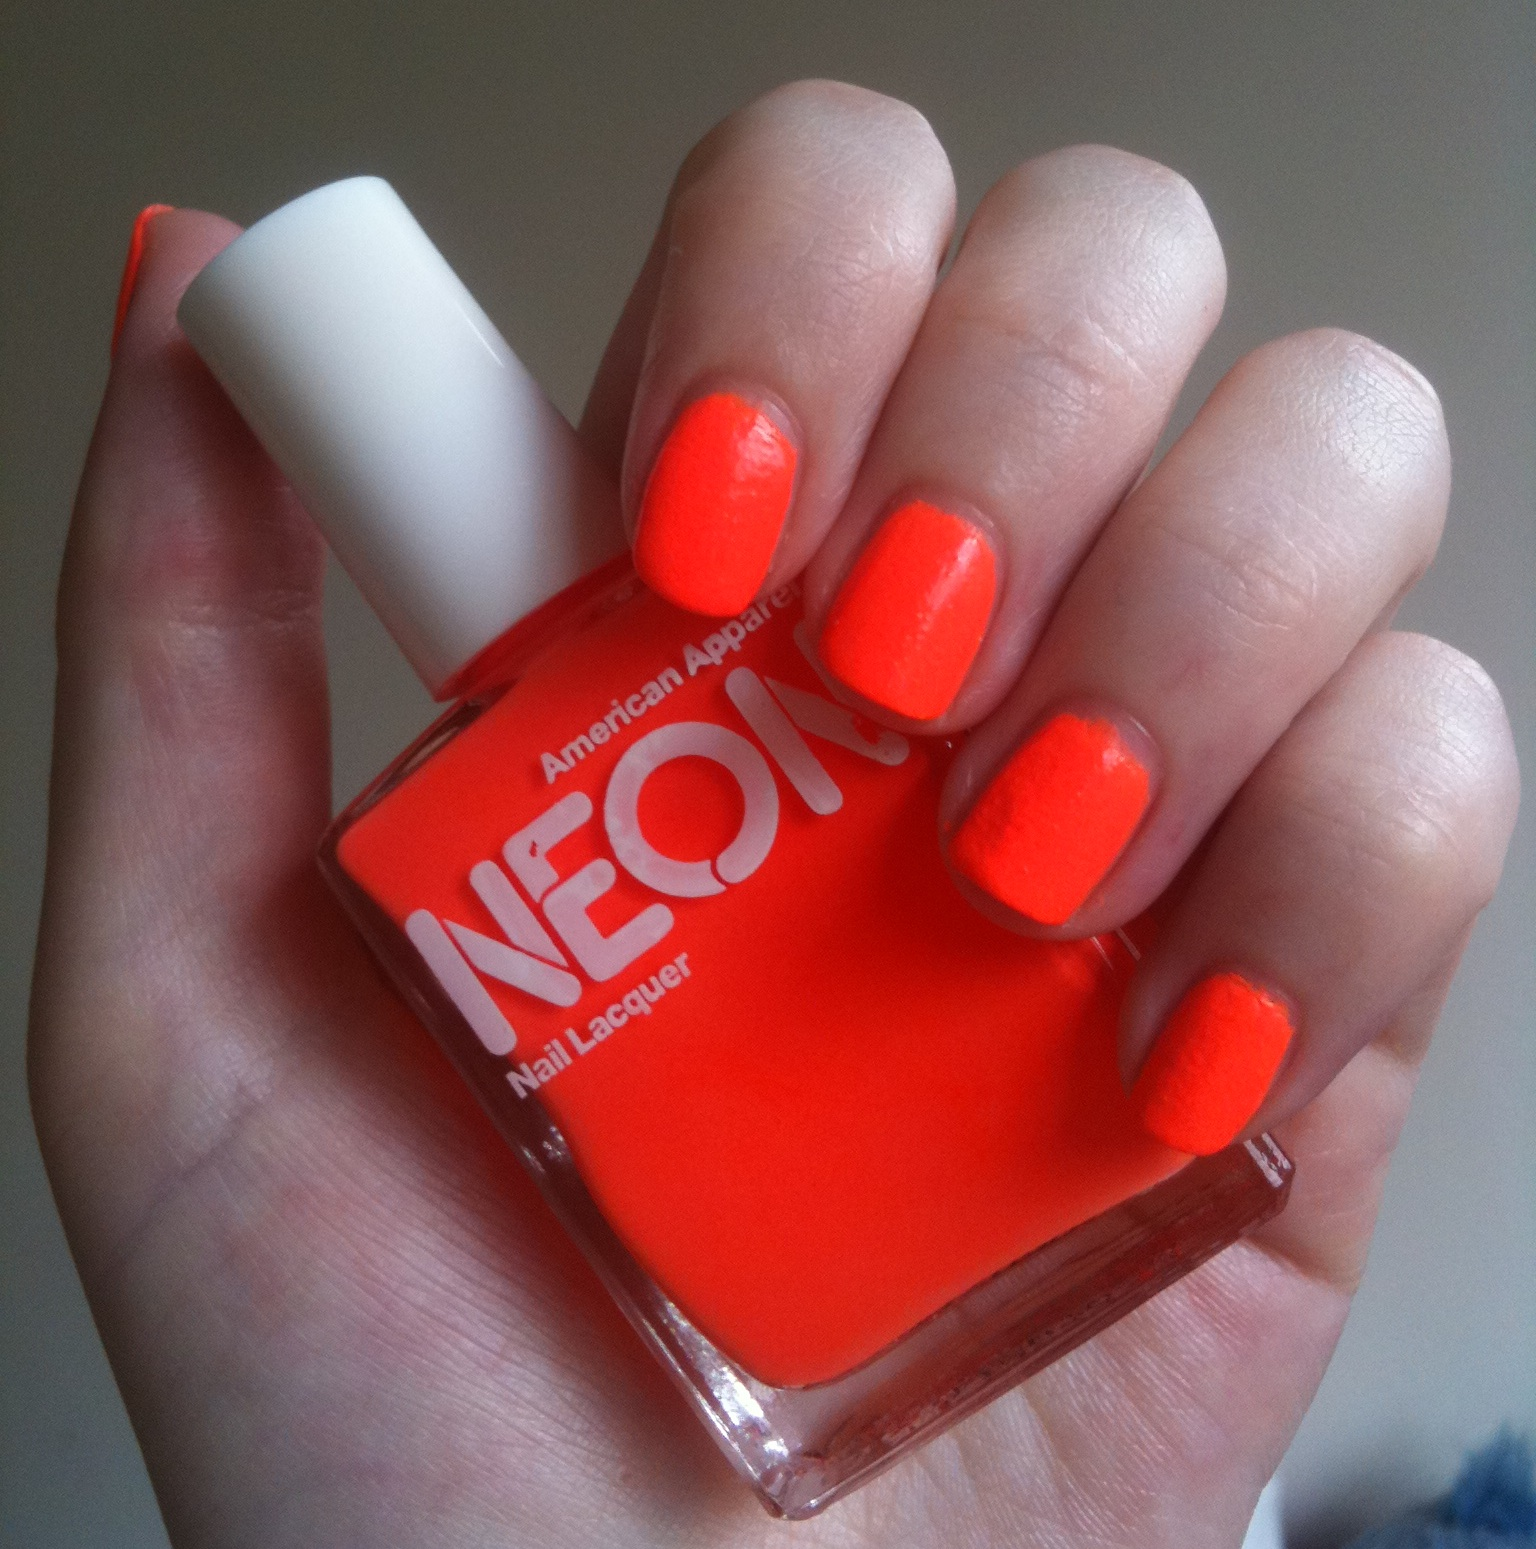 Fluorescent Neon Pink Nail Polish: Through The Looking Glass